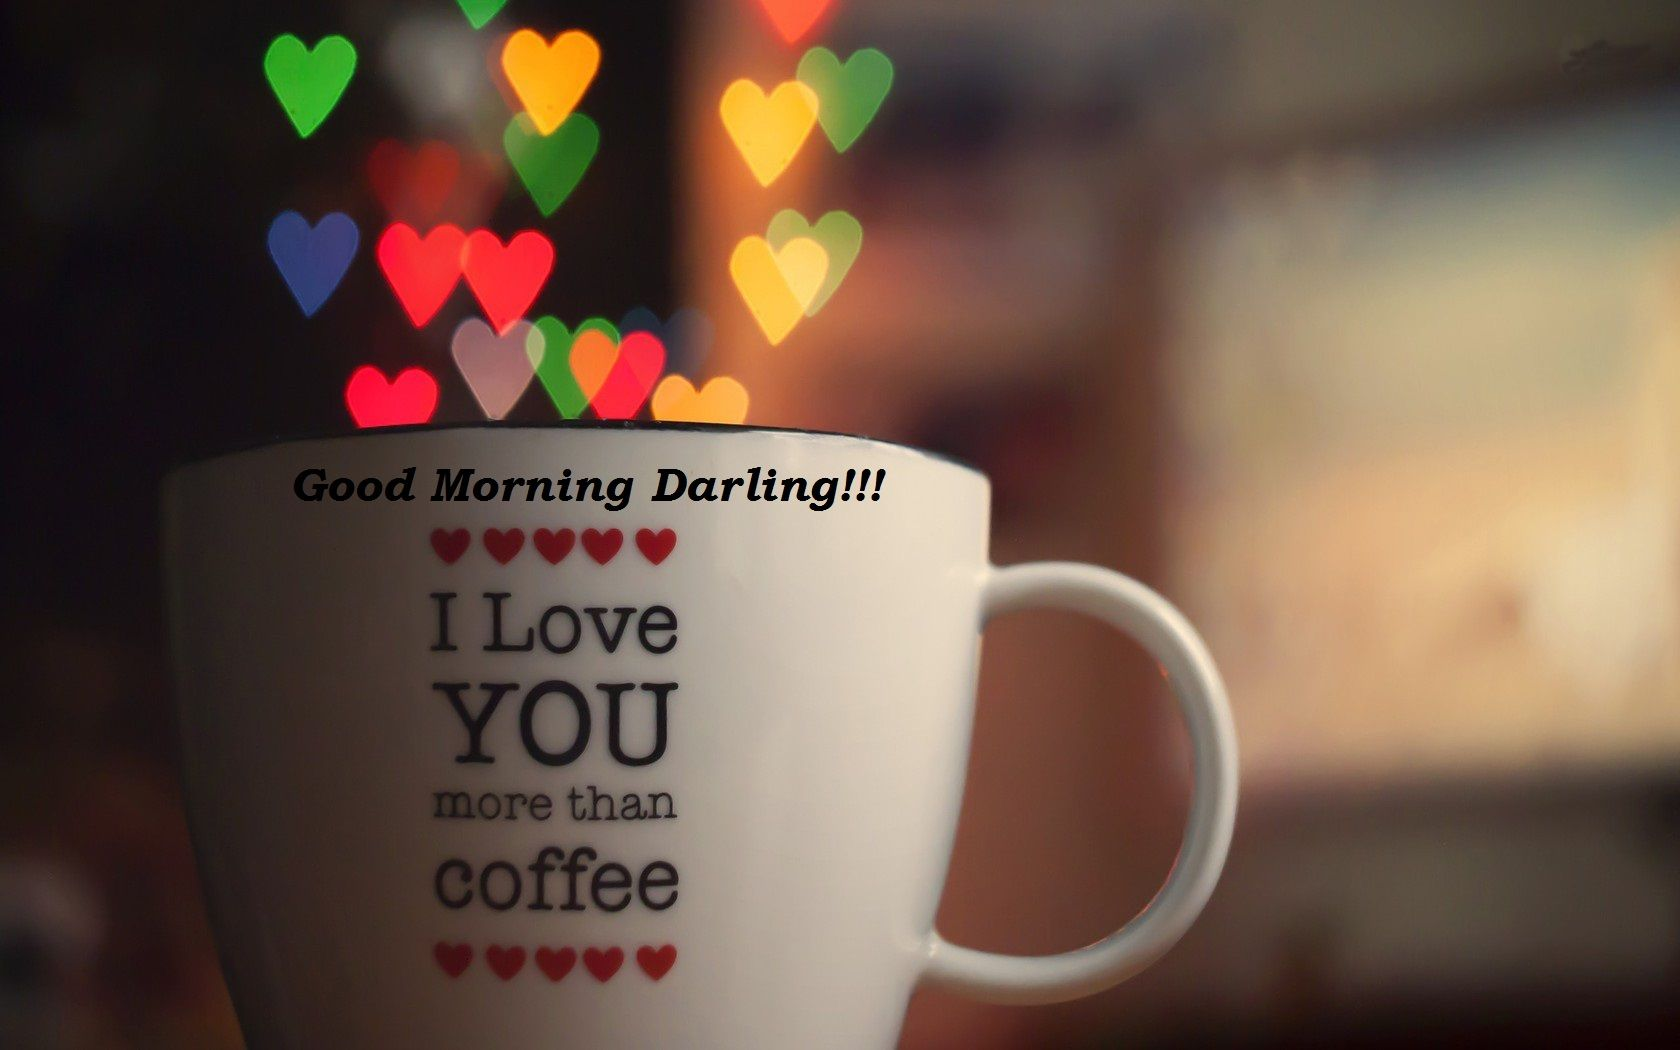 Coffee Lovers Love Hd Wallpapers: Good Morning Images For Girlfriend